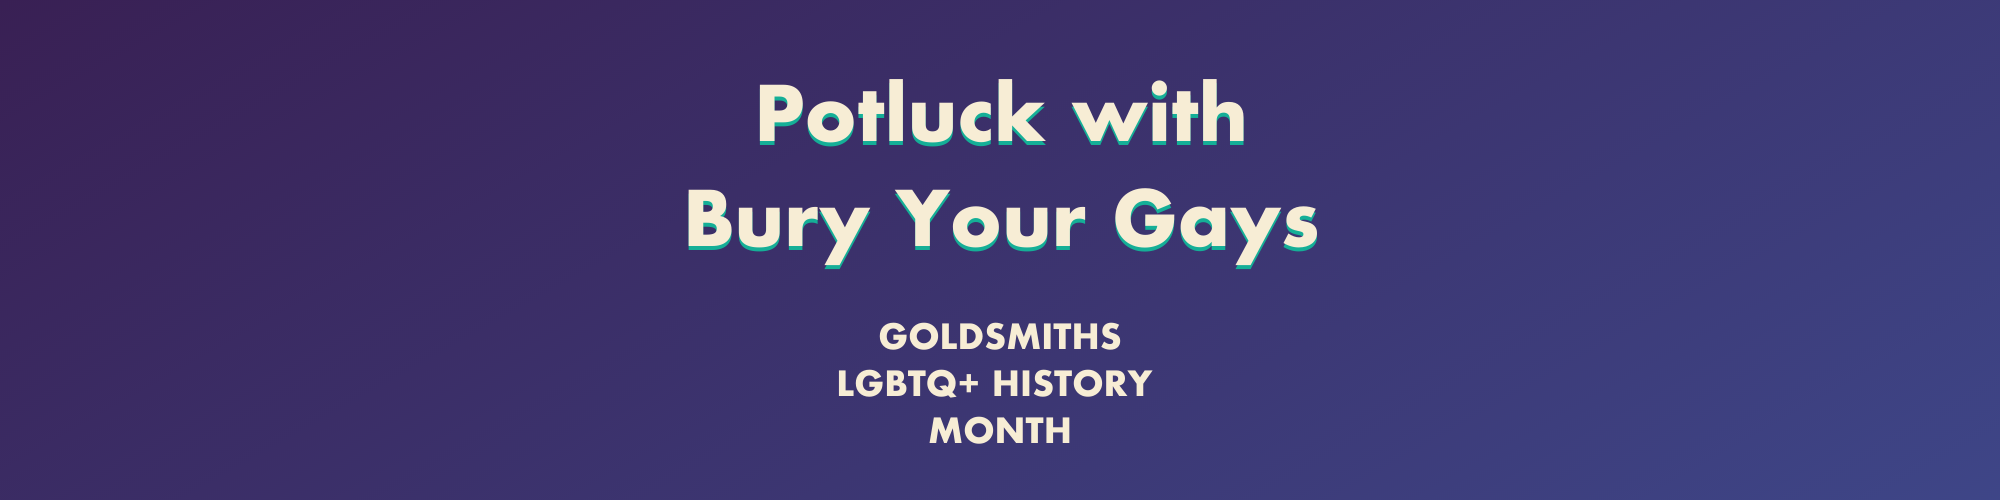 Potluck with Bury Your Gays